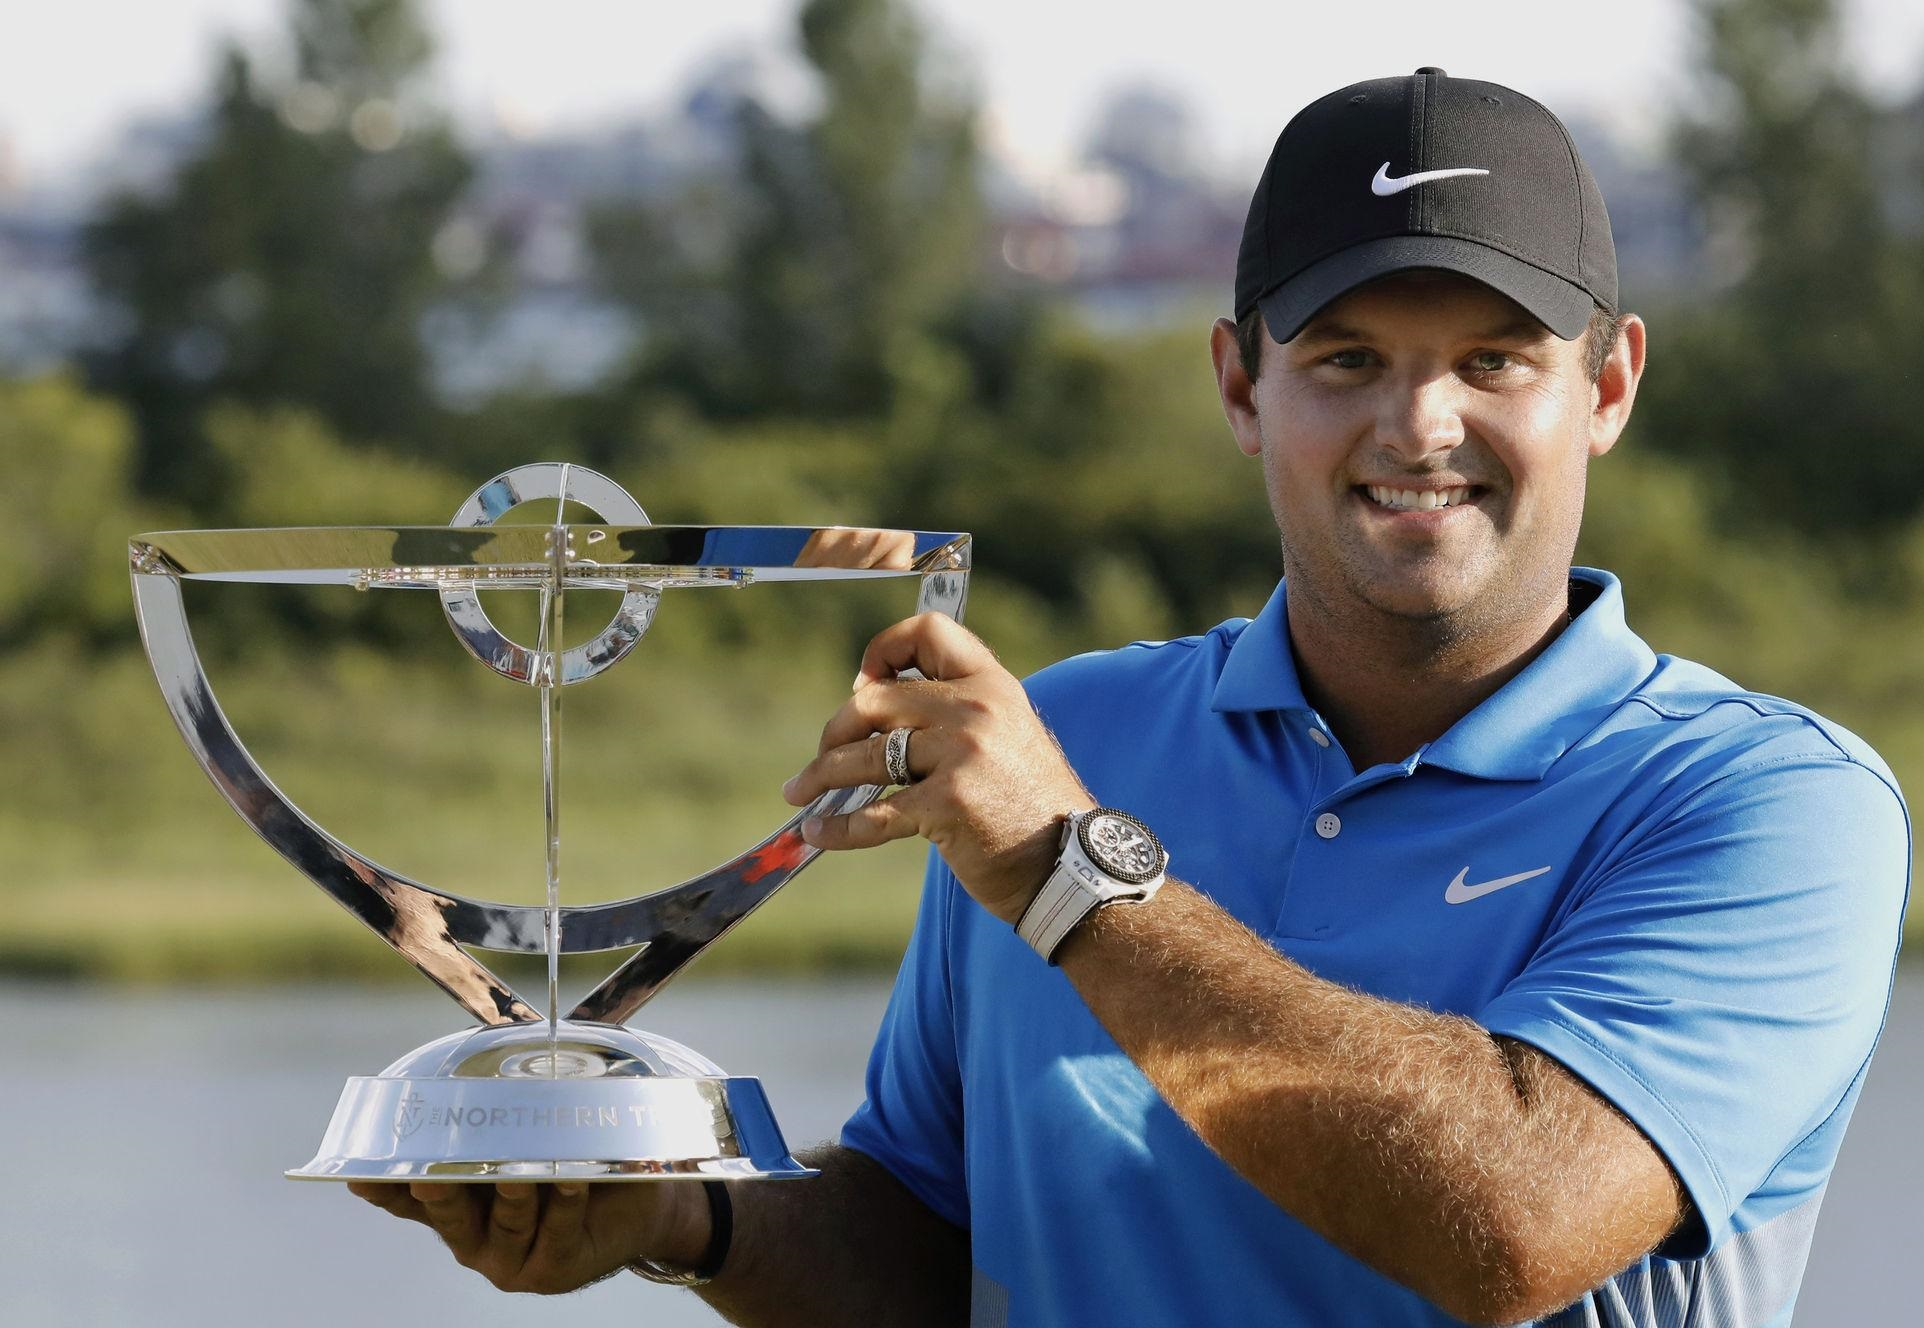 Patrick Reed: The Northern Trust Champion